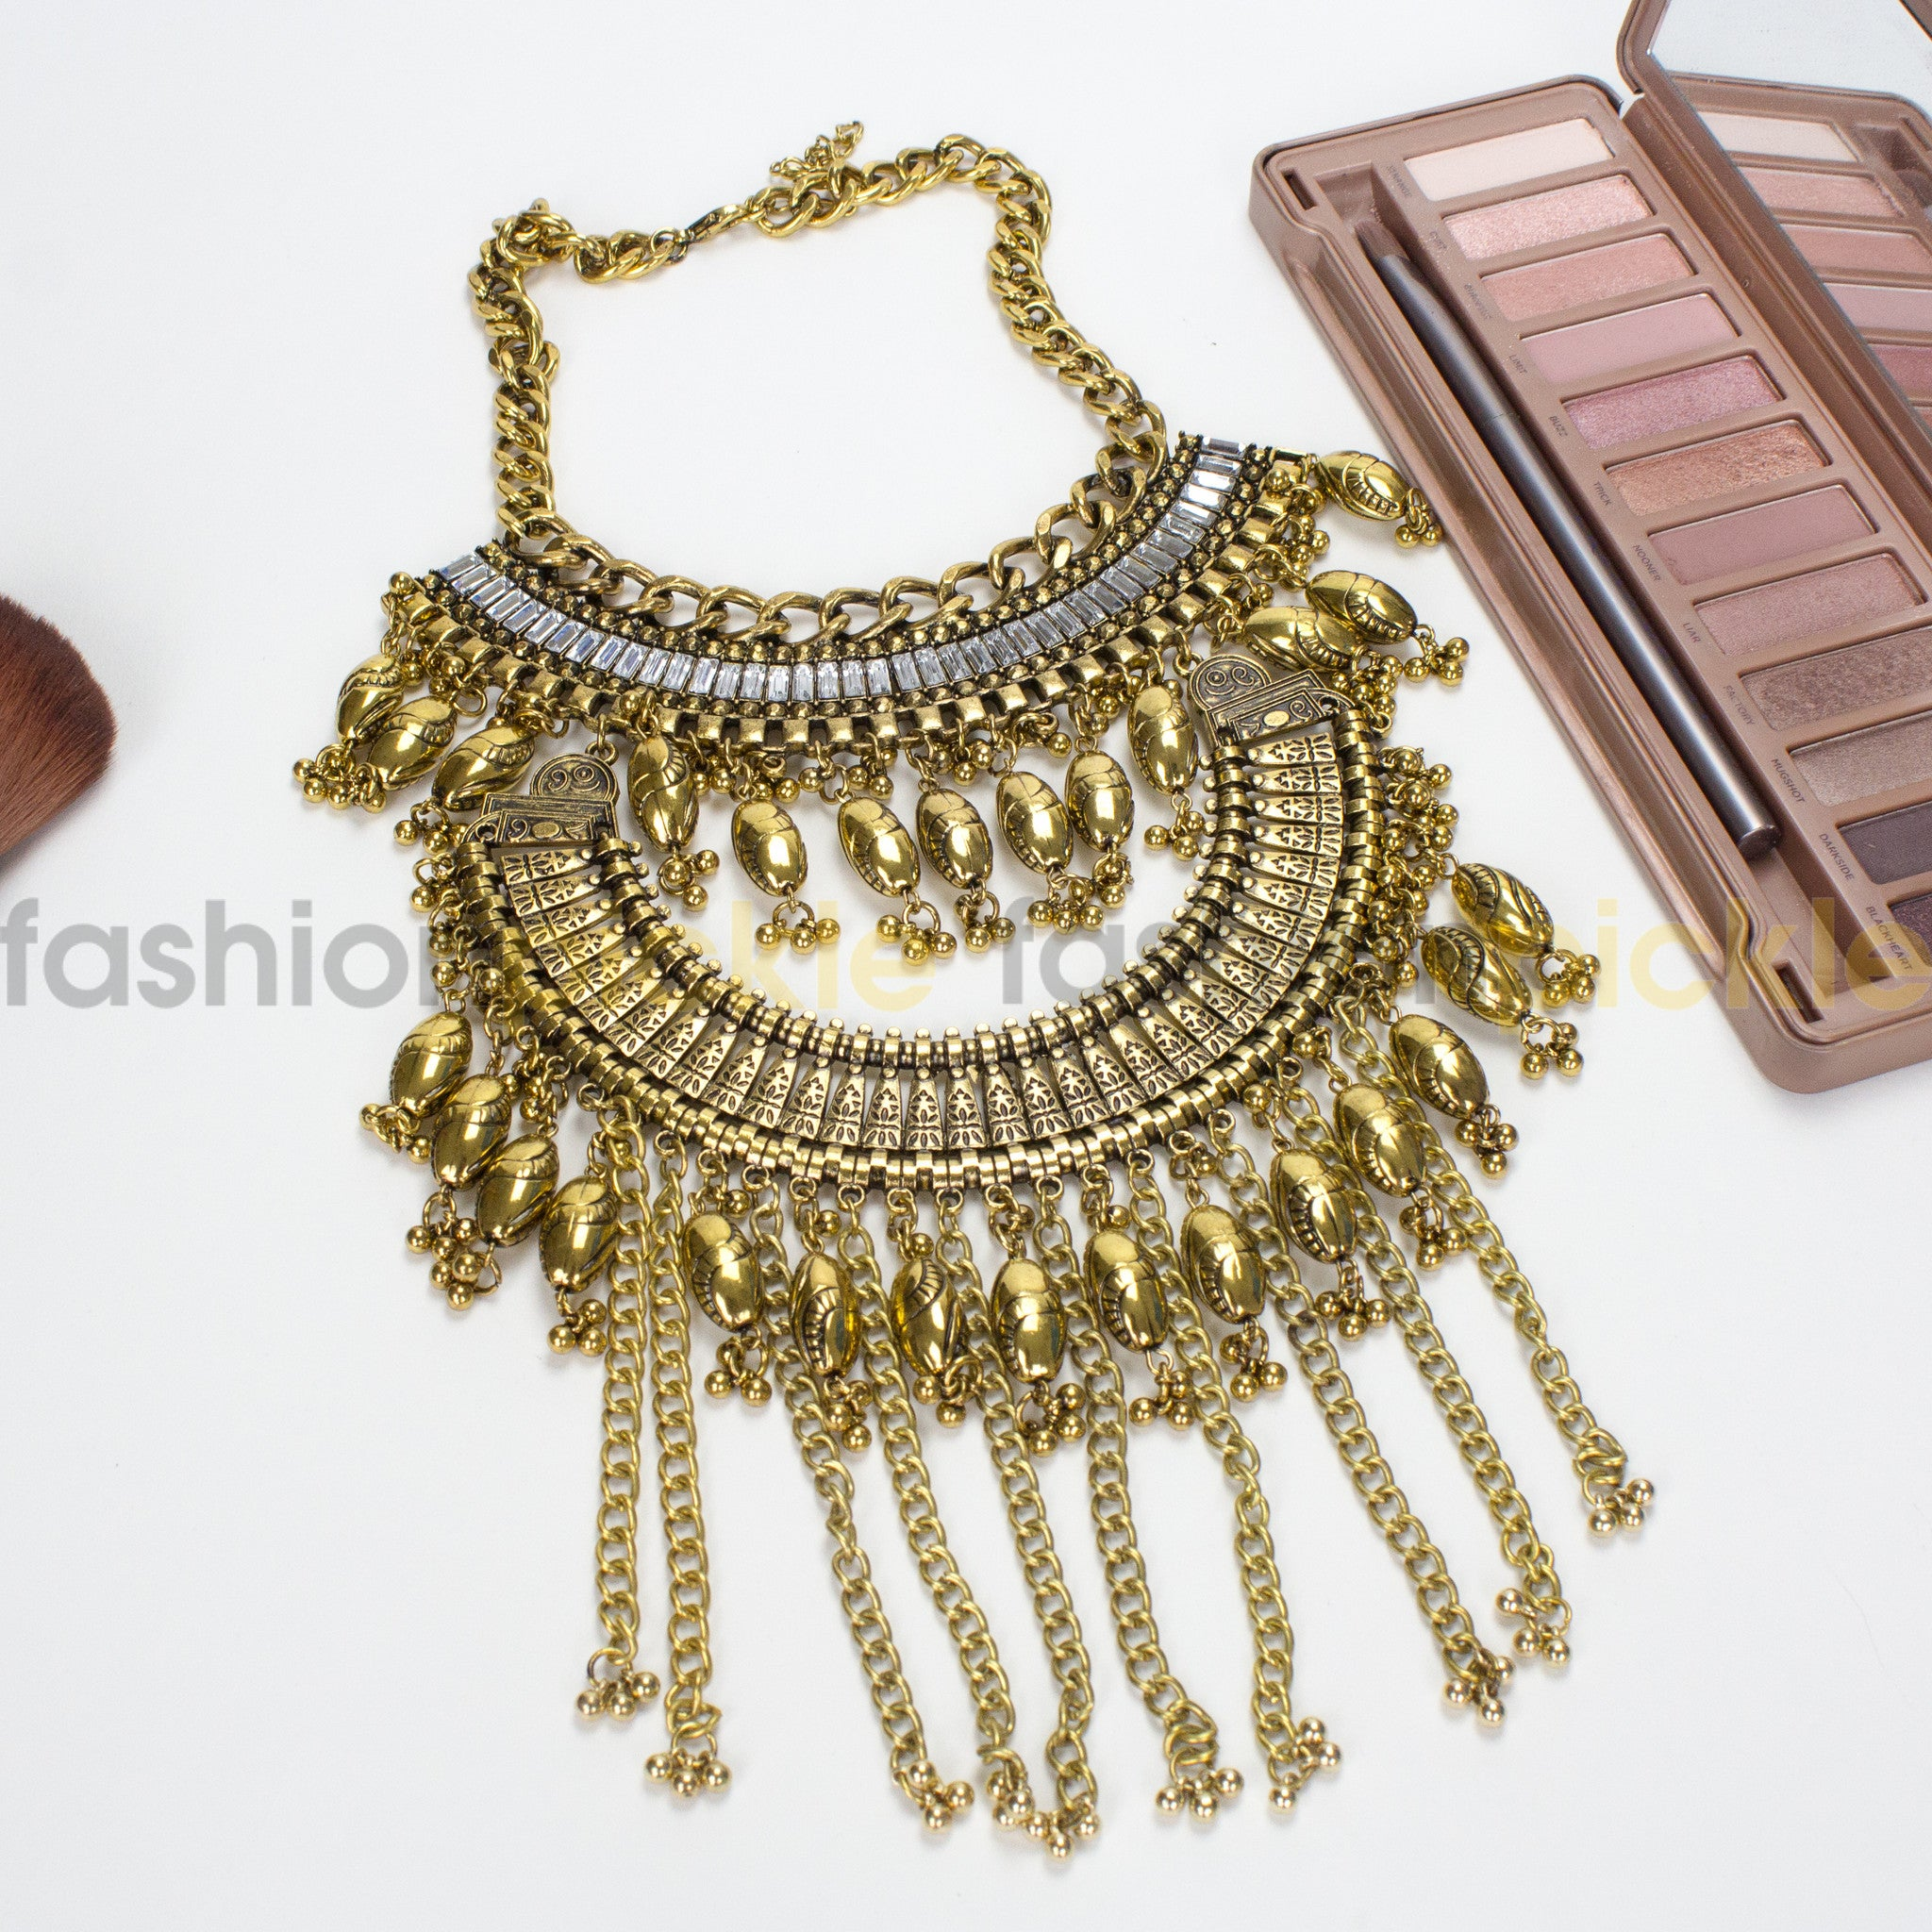 Versailles Gold Necklace